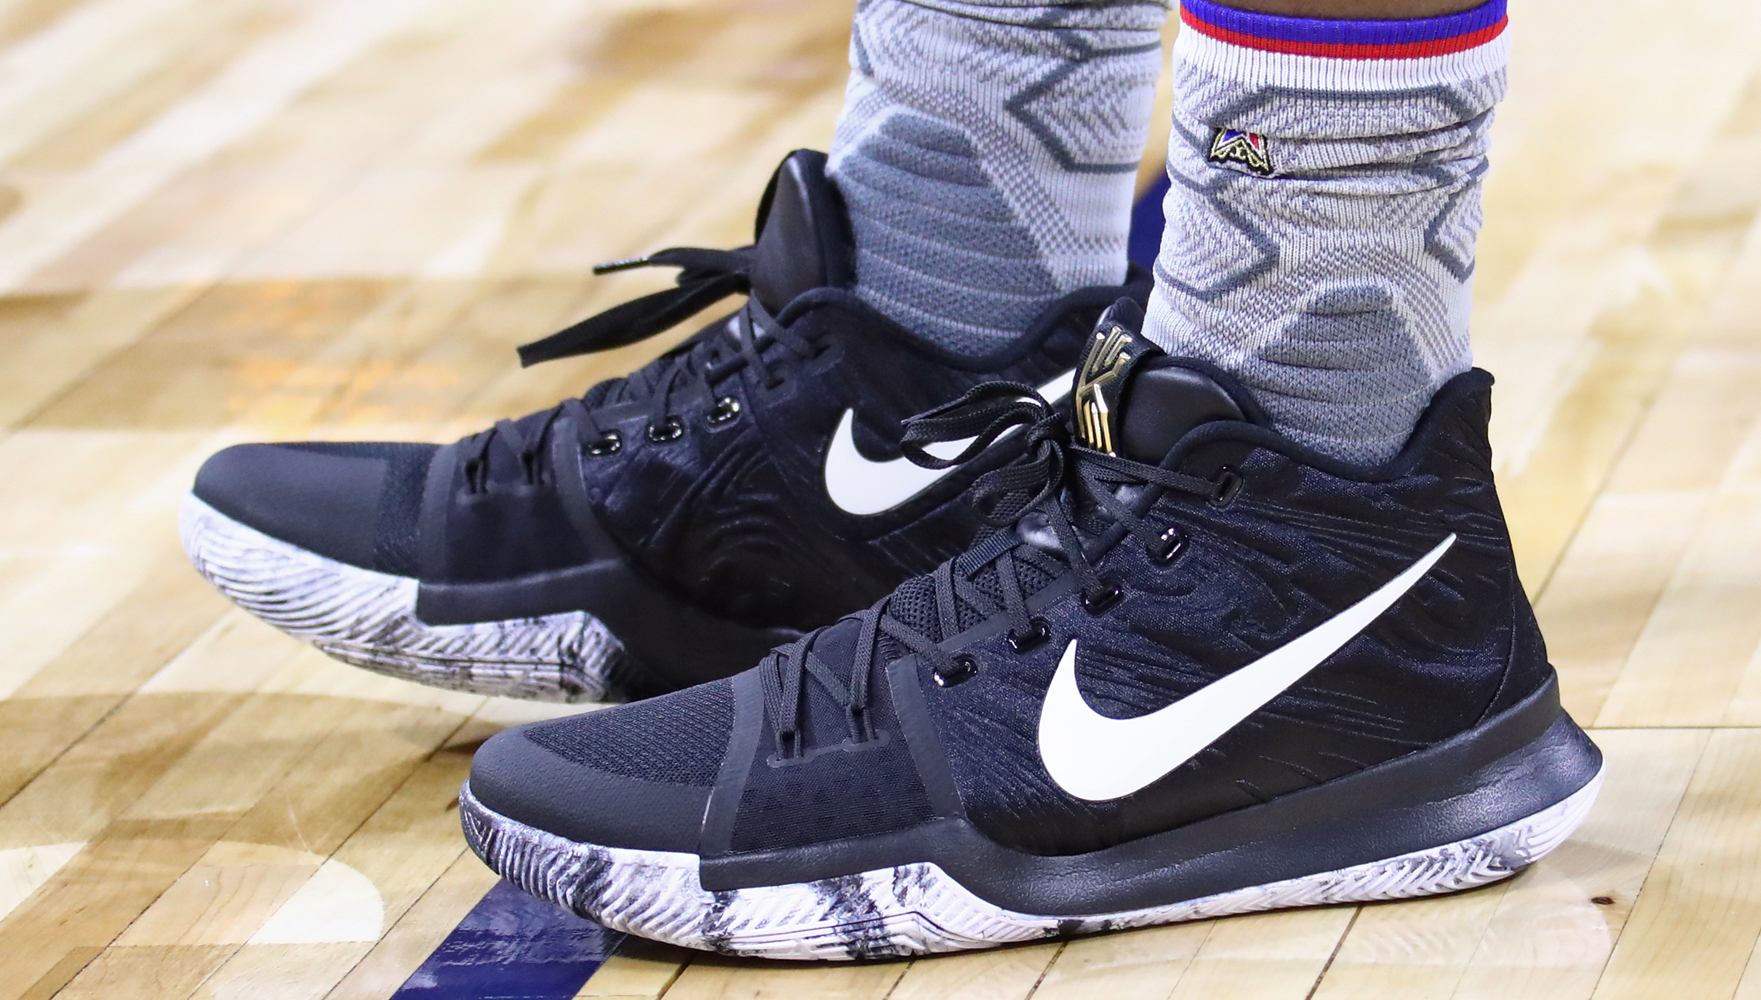 Worn by Kyrie Irving at NBA All-Star practice